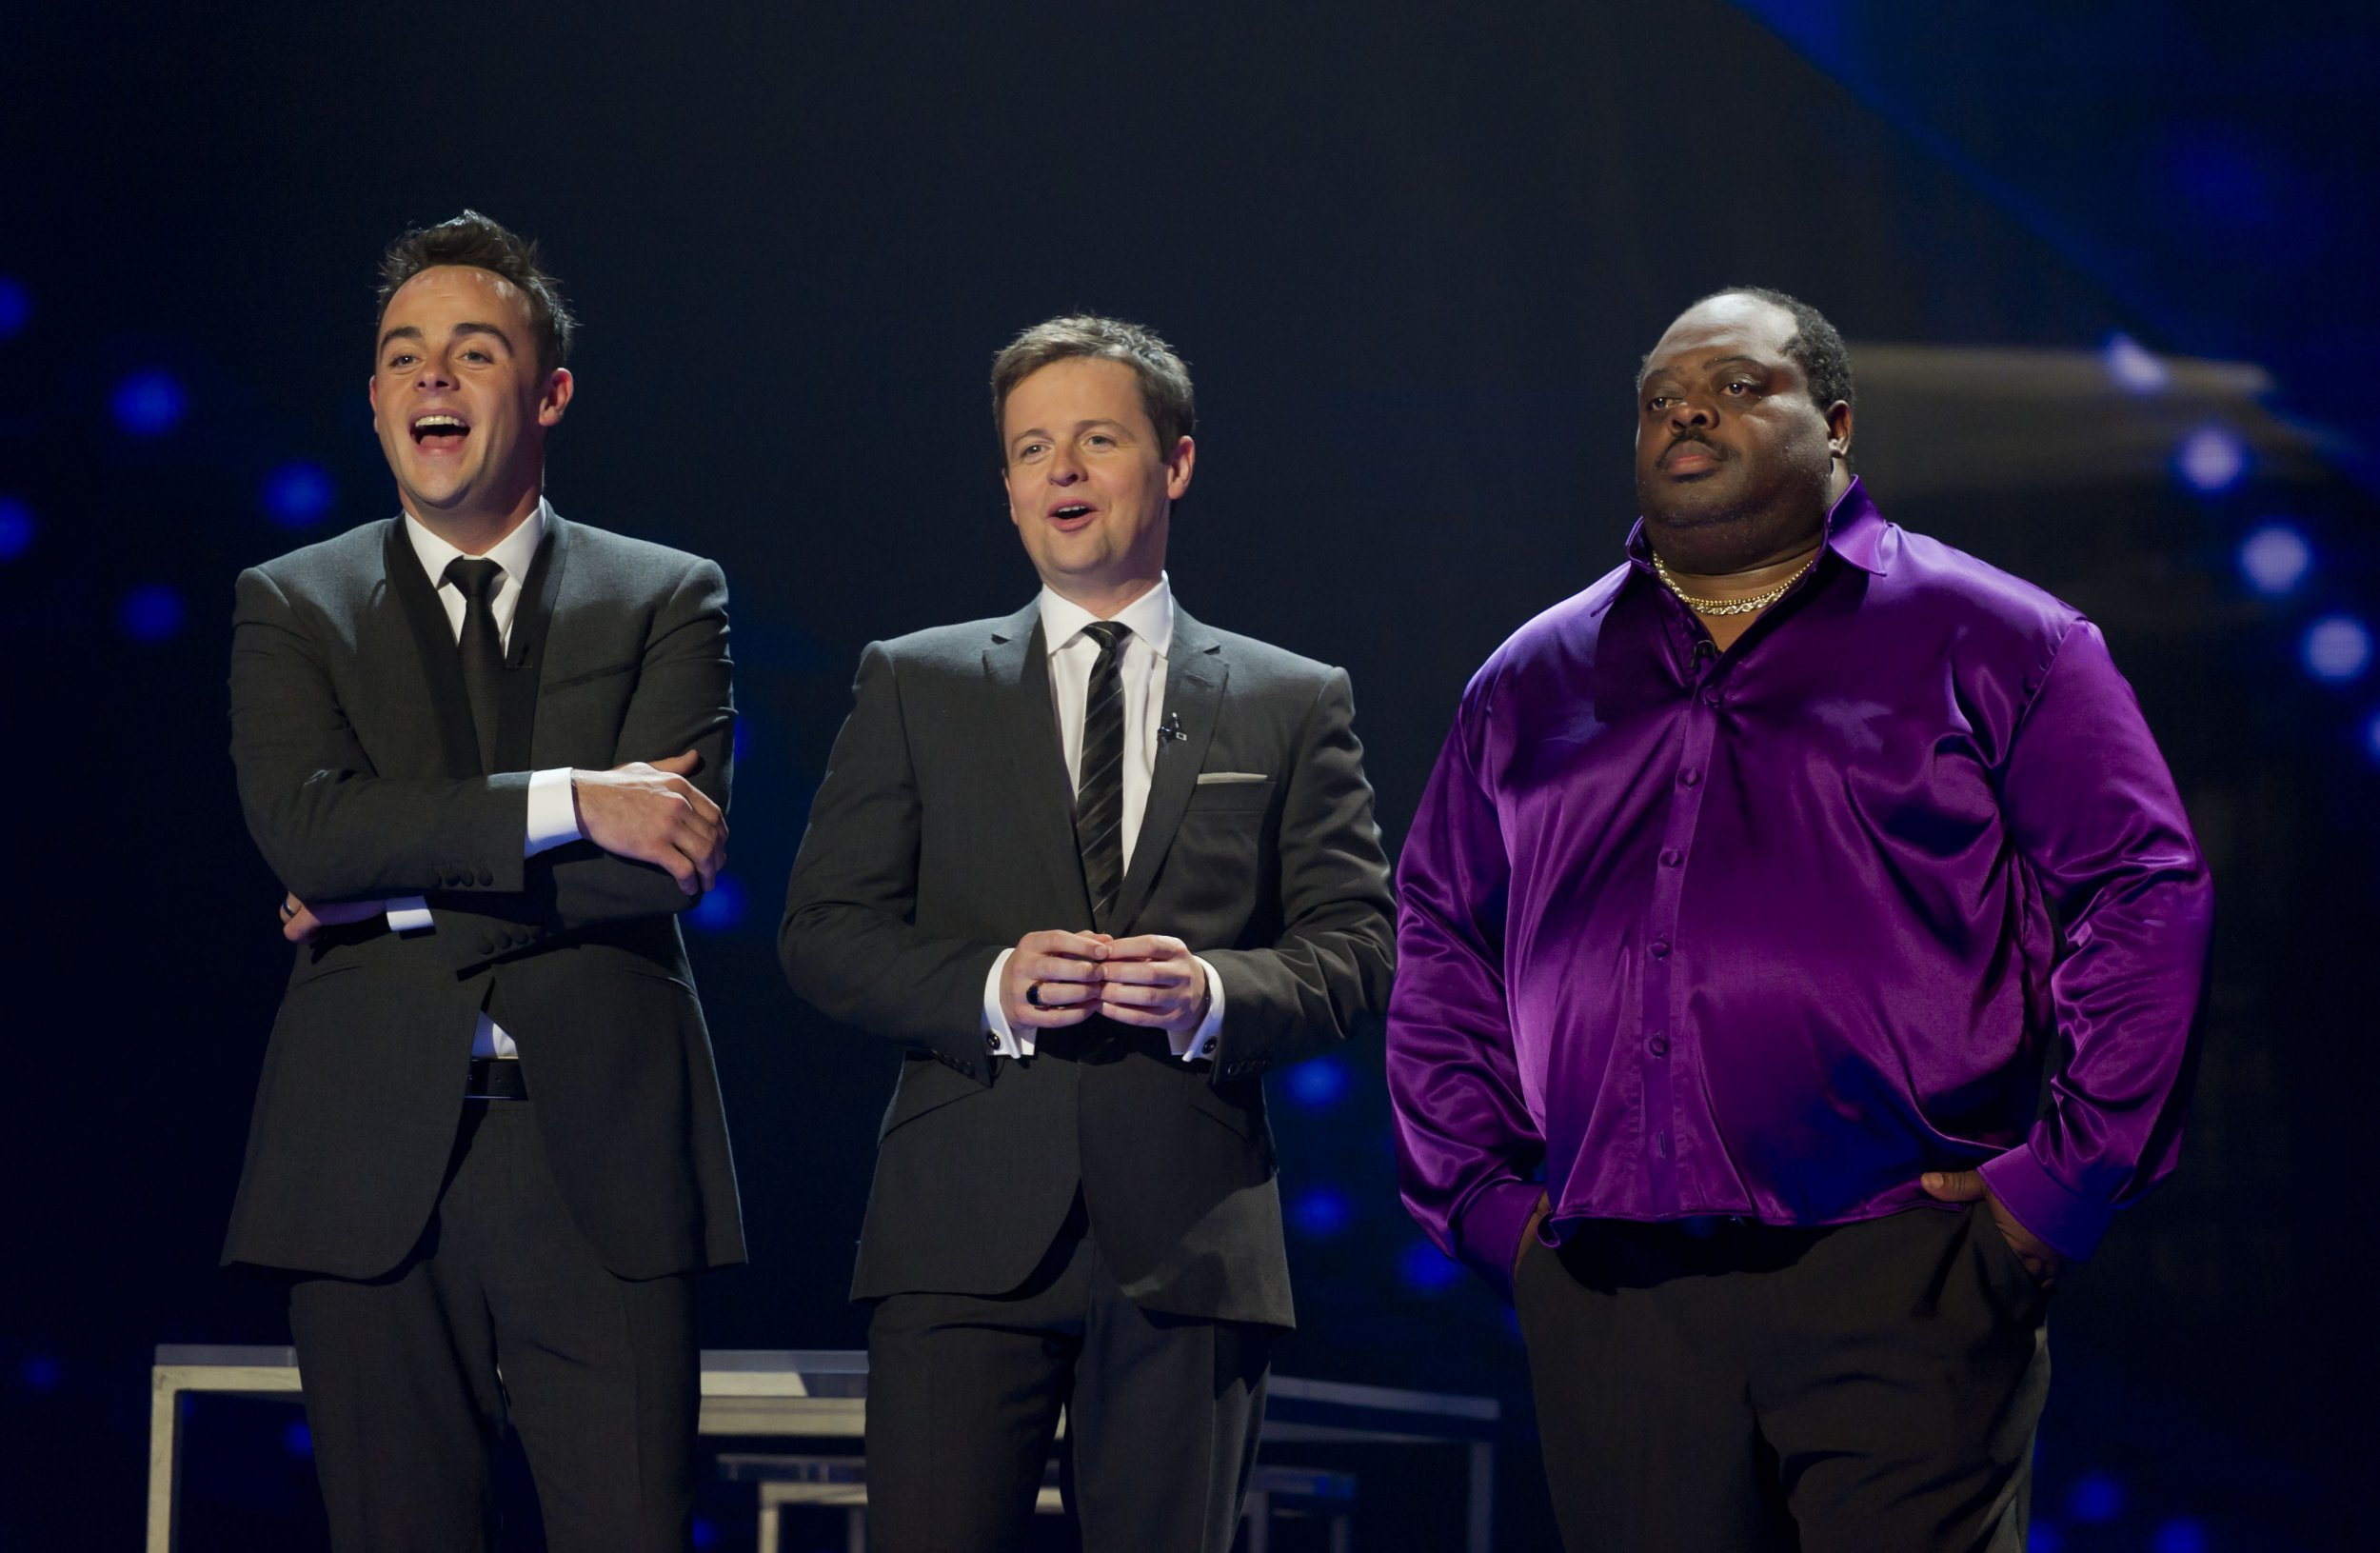 EDITORIAL USE ONLY / NO MERCHANDISING / NO BOOK PUBLISHING Mandatory Credit: Photo by Ken McKay/TalkbackThames/REX/Shutterstock (1335819ft) Ant and Dec [Anthony McPartlin, Declan Donnelly] with Antonio Popeye 'Britain's Got Talent' TV Programme,London, Britain - 3 June 2011